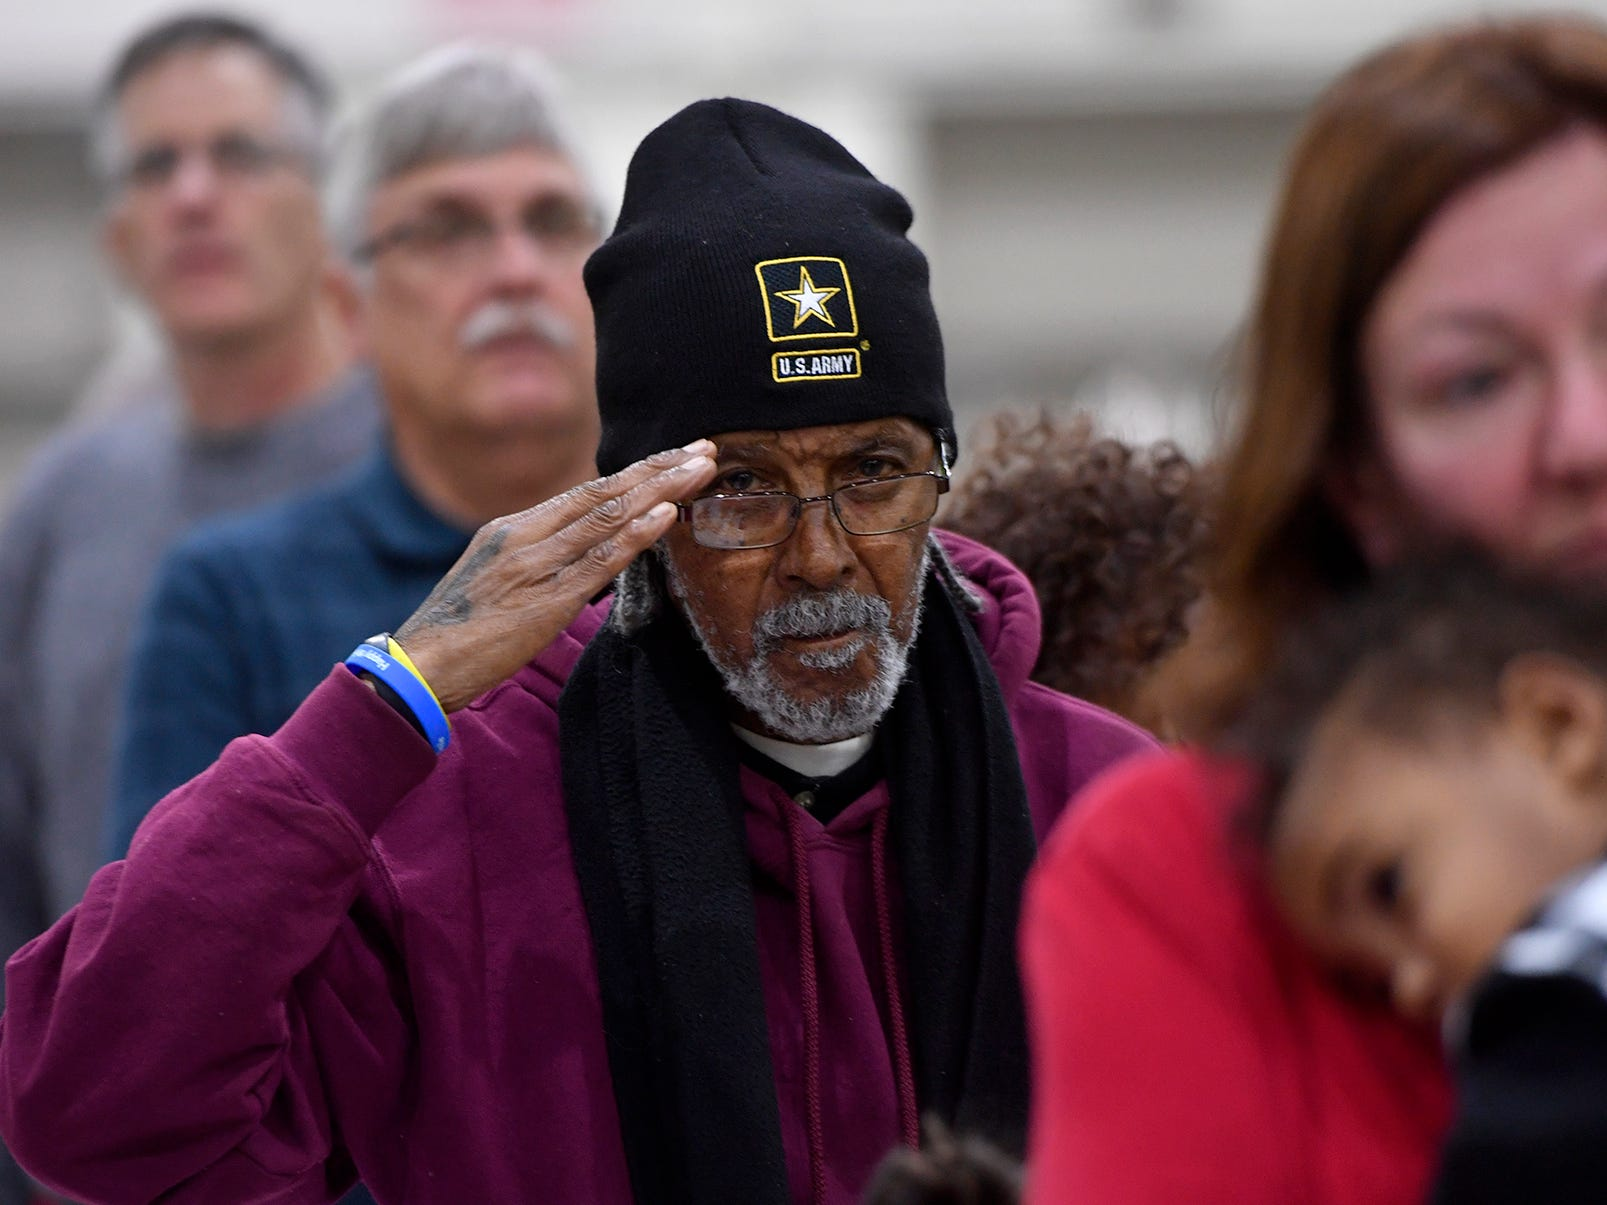 Taree Hanes of York salutes during the playing of the national anthem at the 2018 York County Veterans Day Celebration, Sunday, November 11, 2018. Hanes served in the US Army during the Korean War.John A. Pavoncello photo